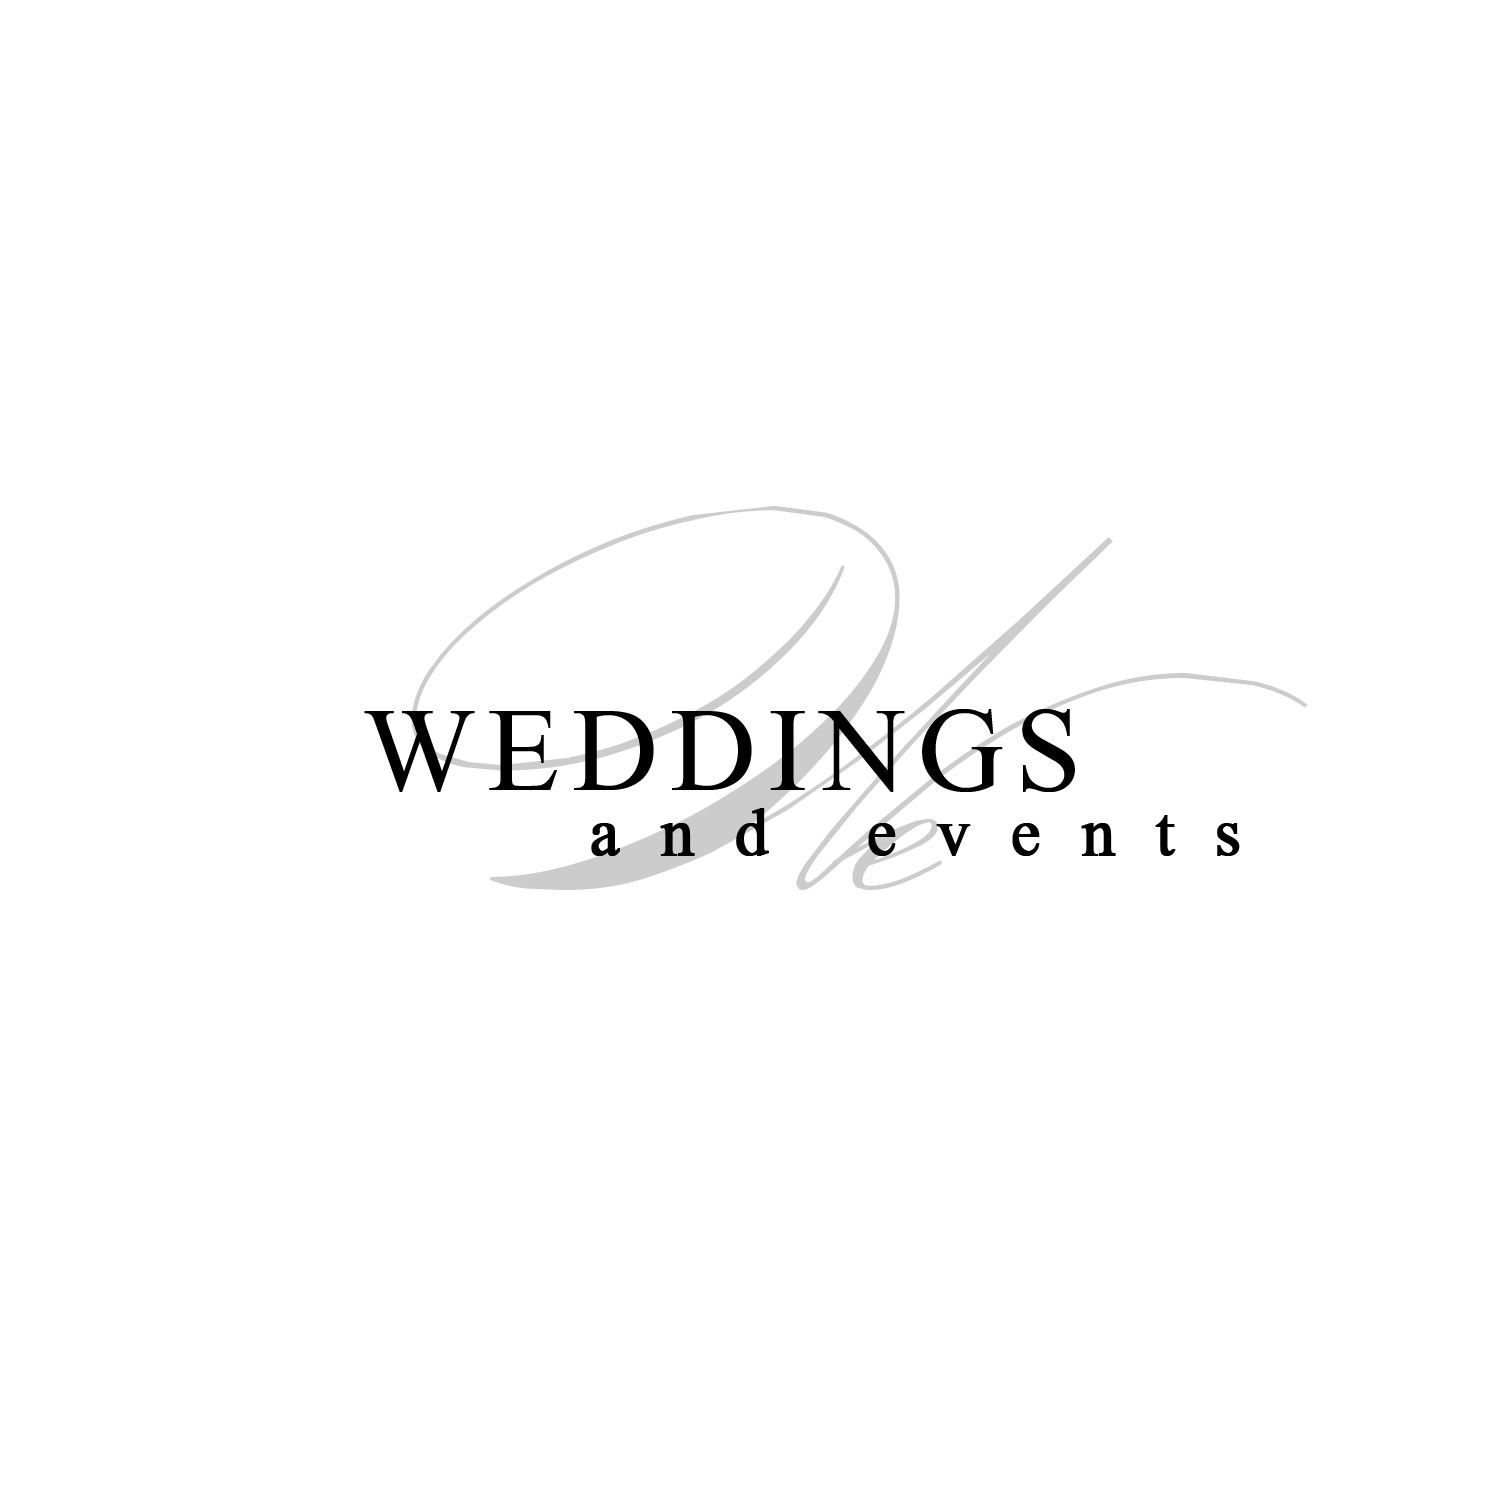 Weddings and Events image 8